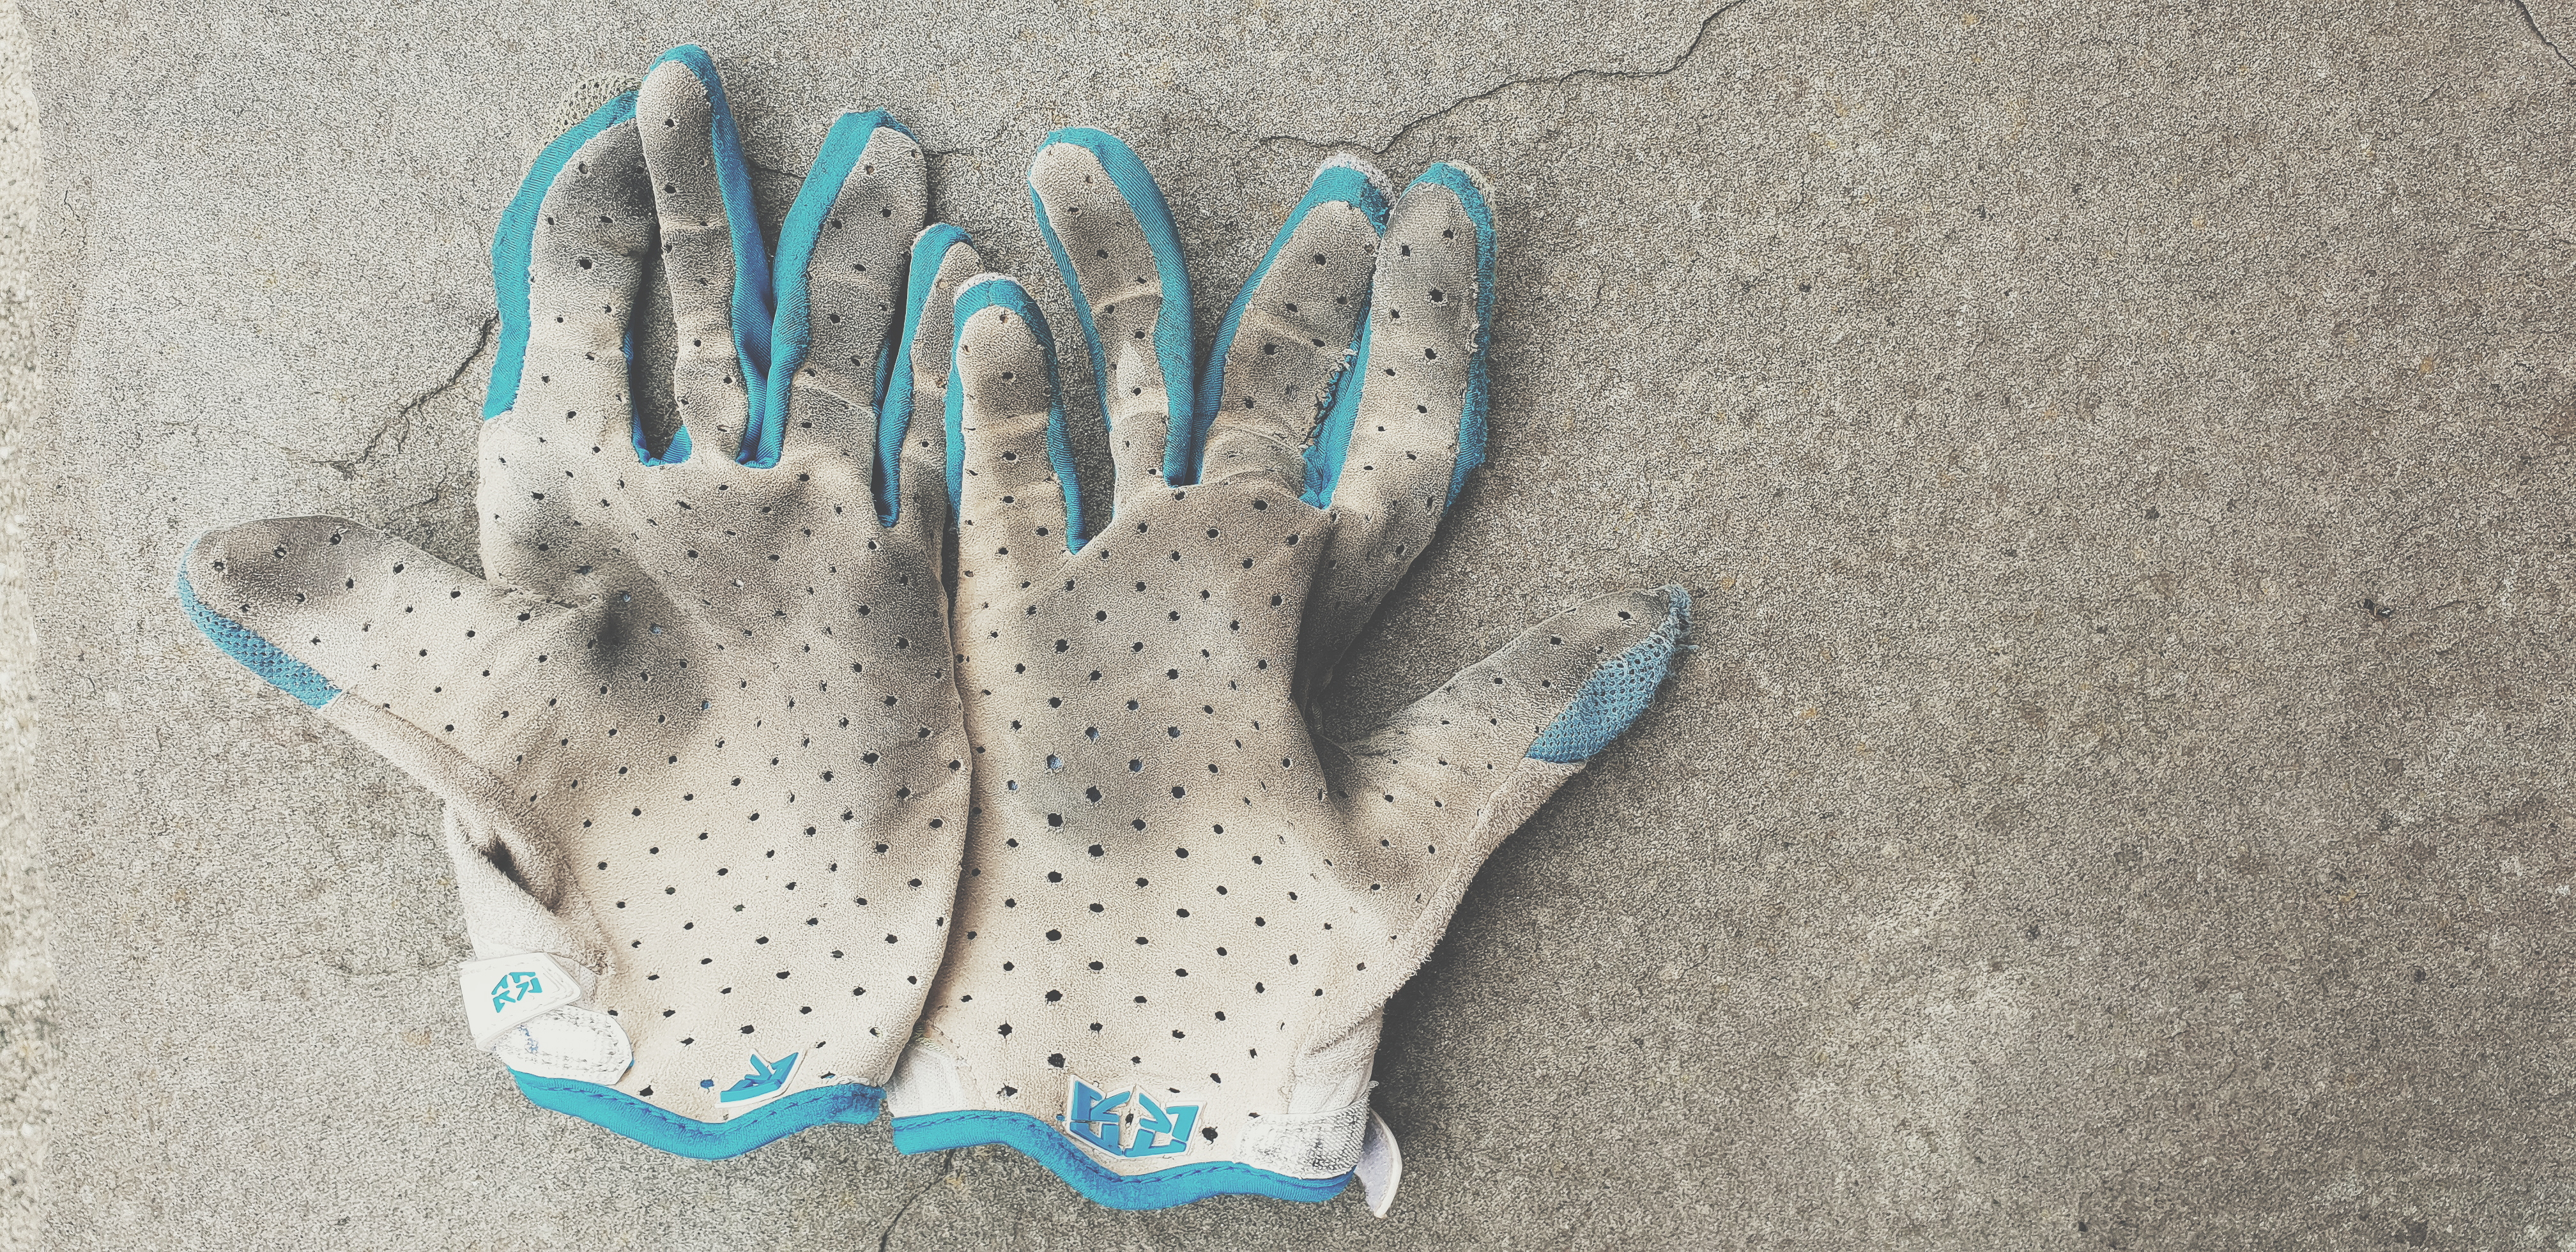 Royal-Victory-Gloves-long-term-review--1-